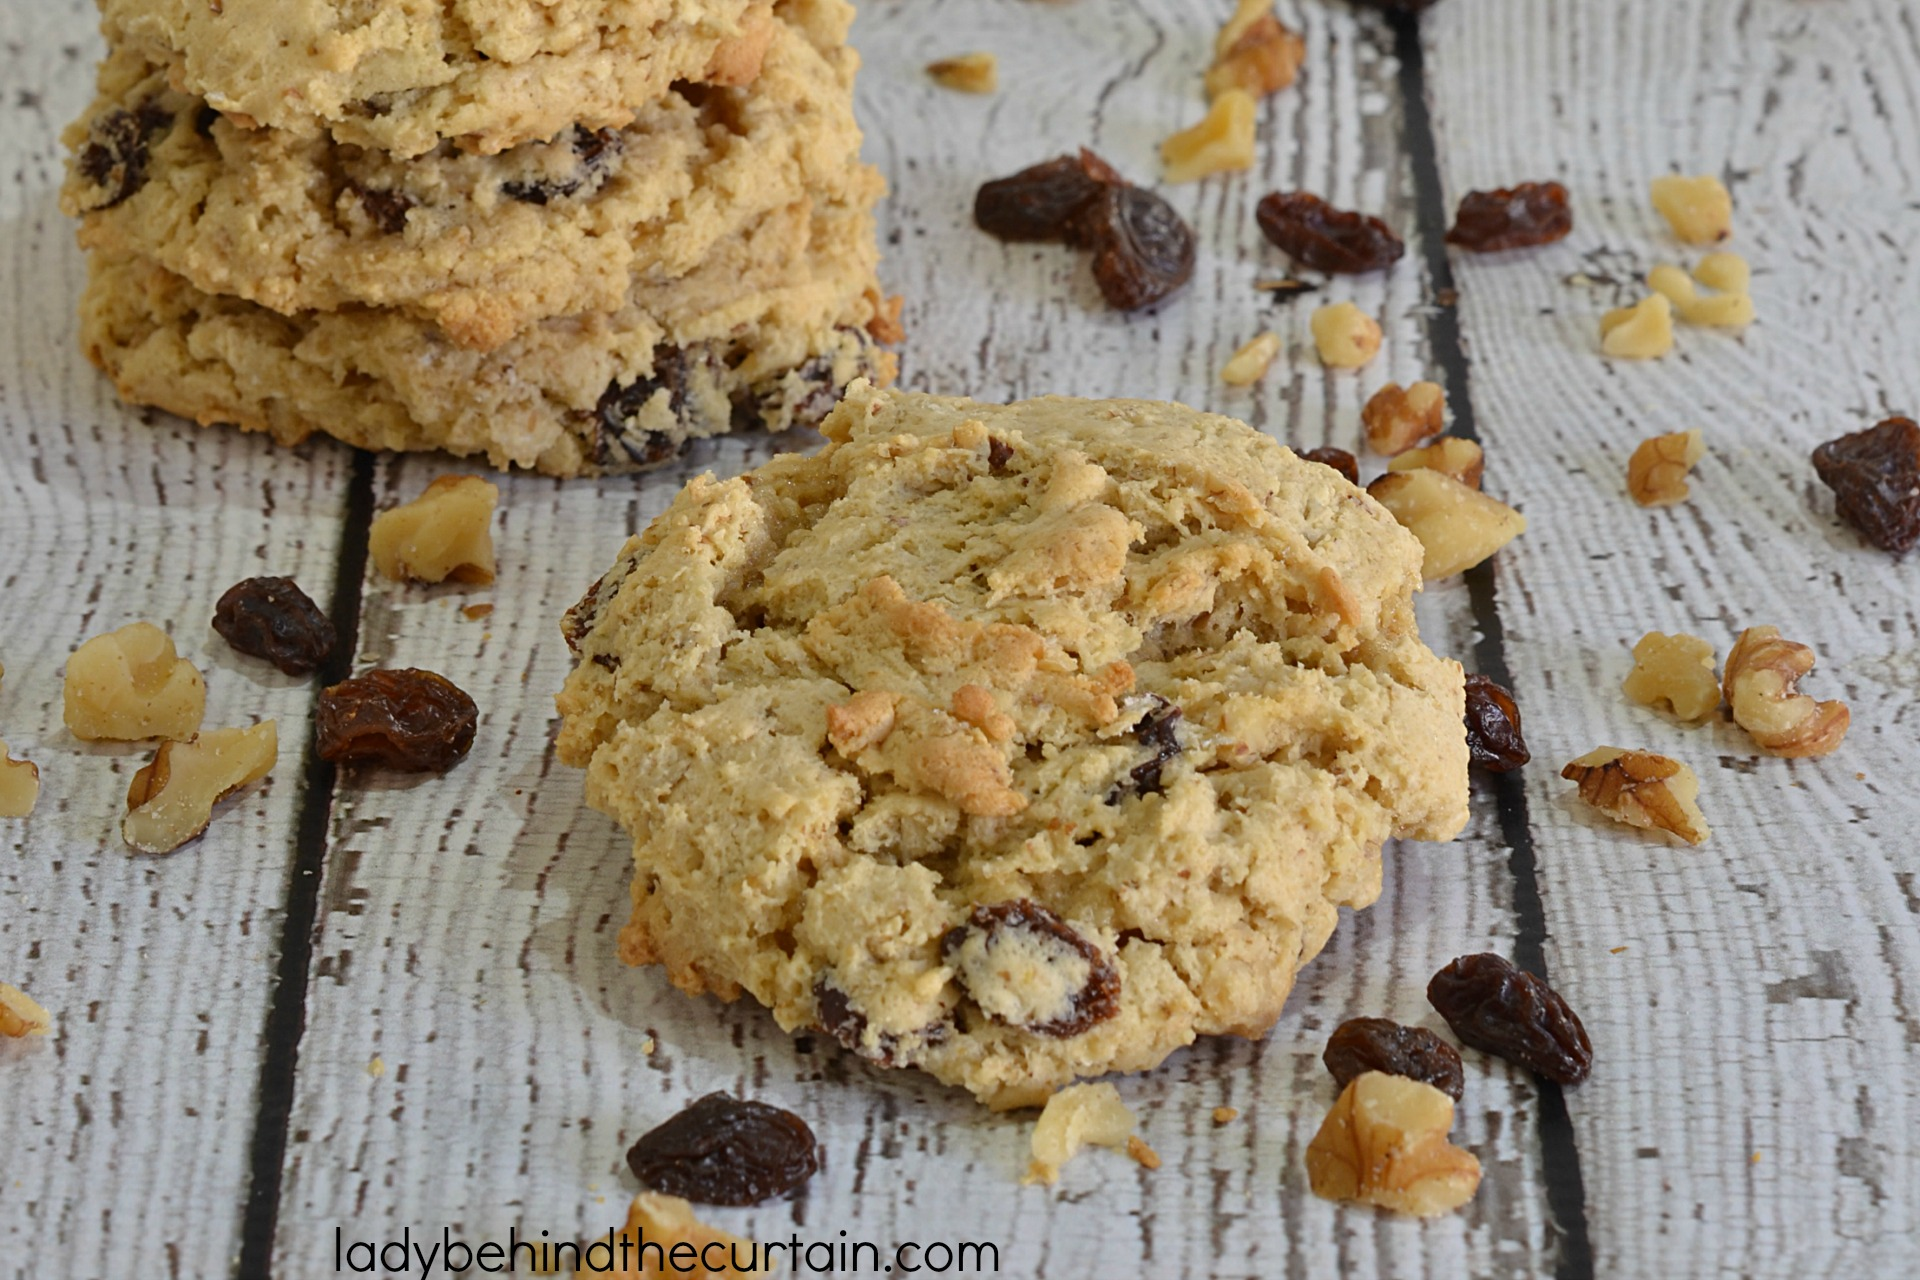 Oatmeal Raisin Bars Using Cake Mix